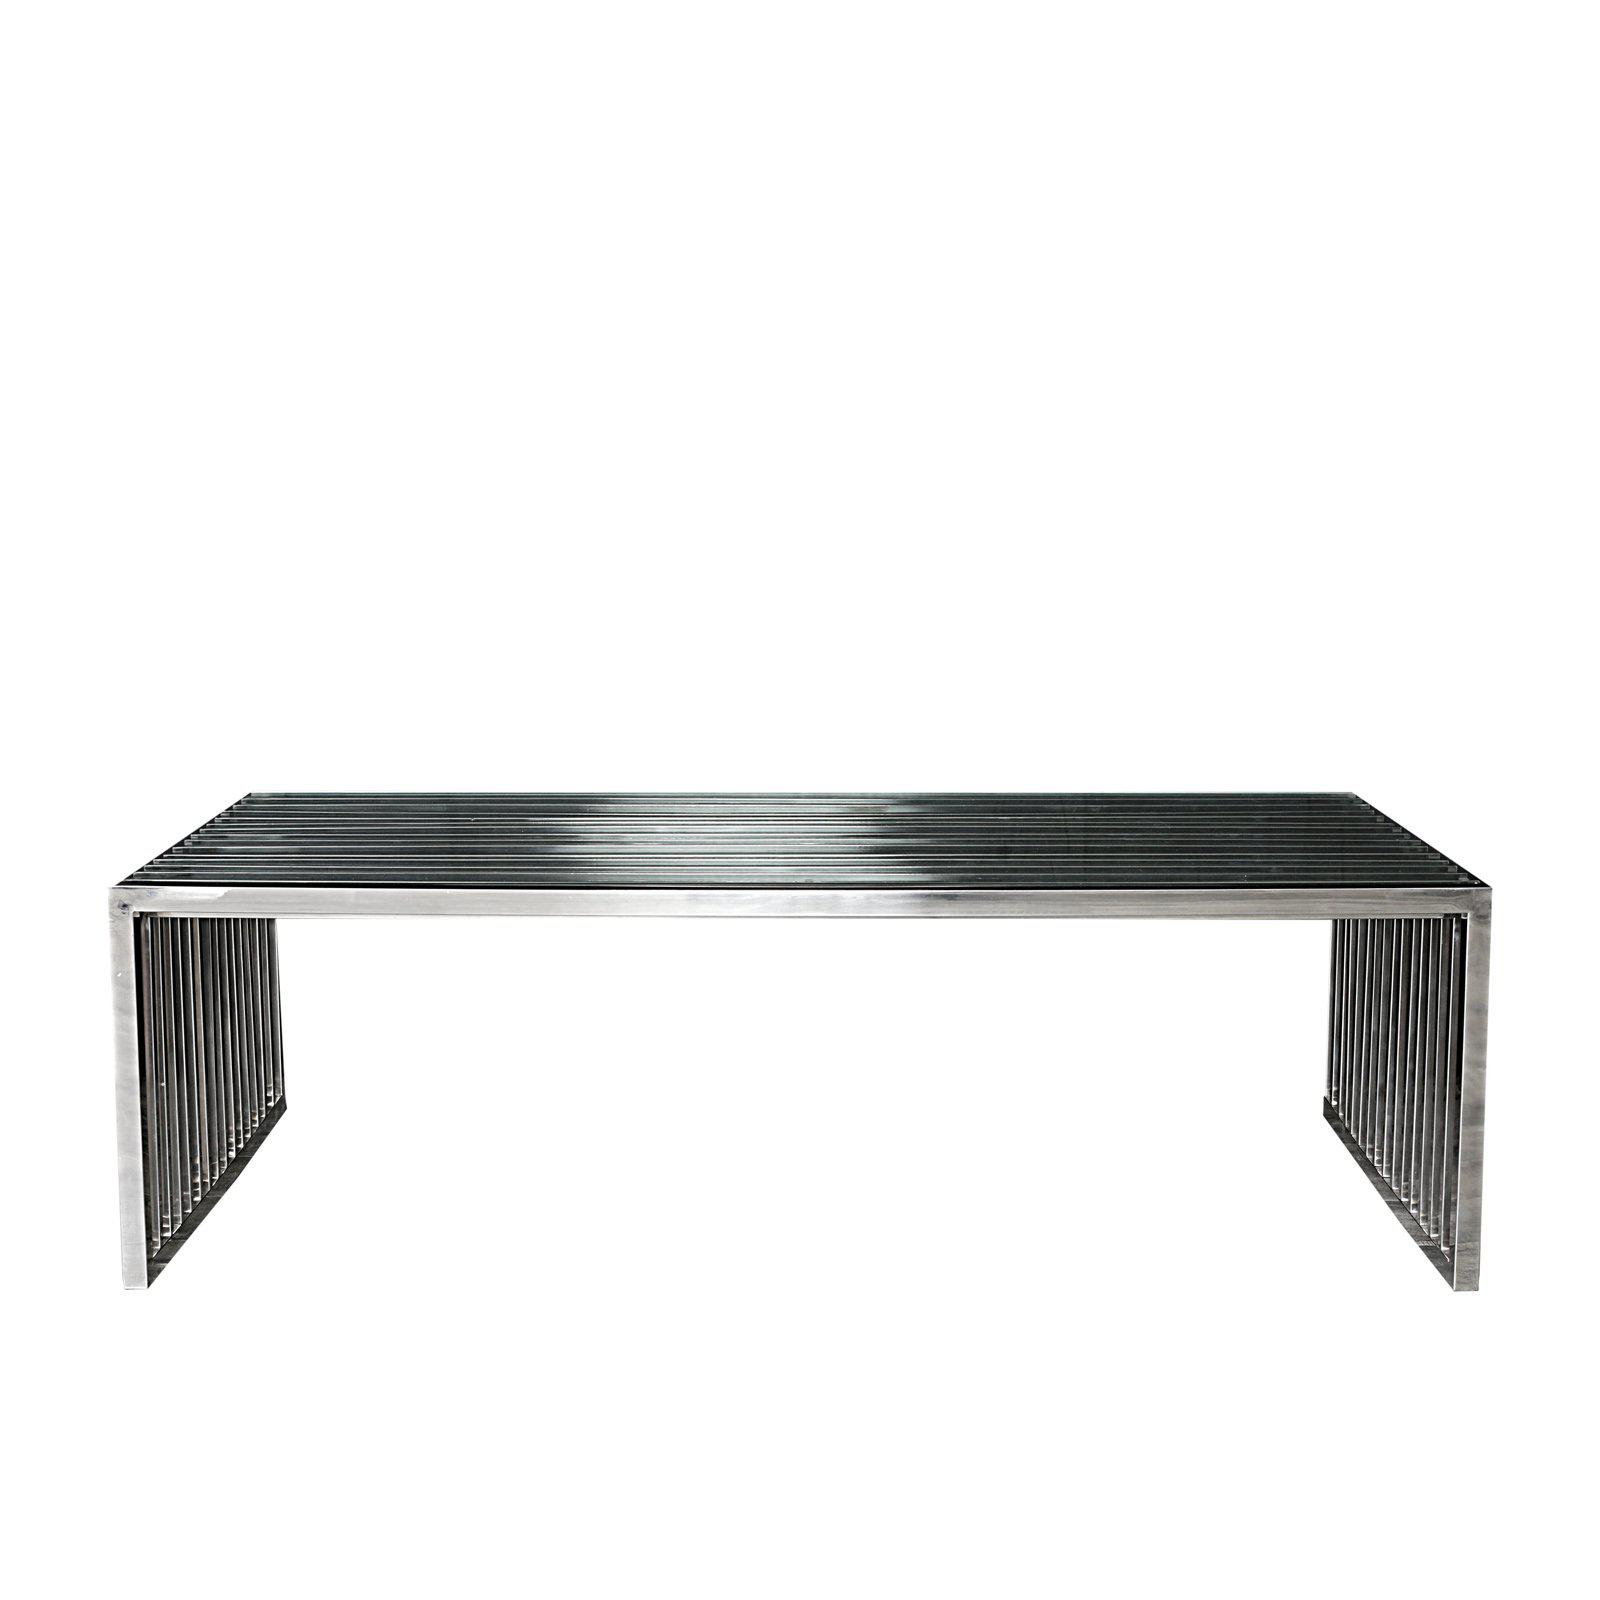 Prisco rectangular Coffee Table